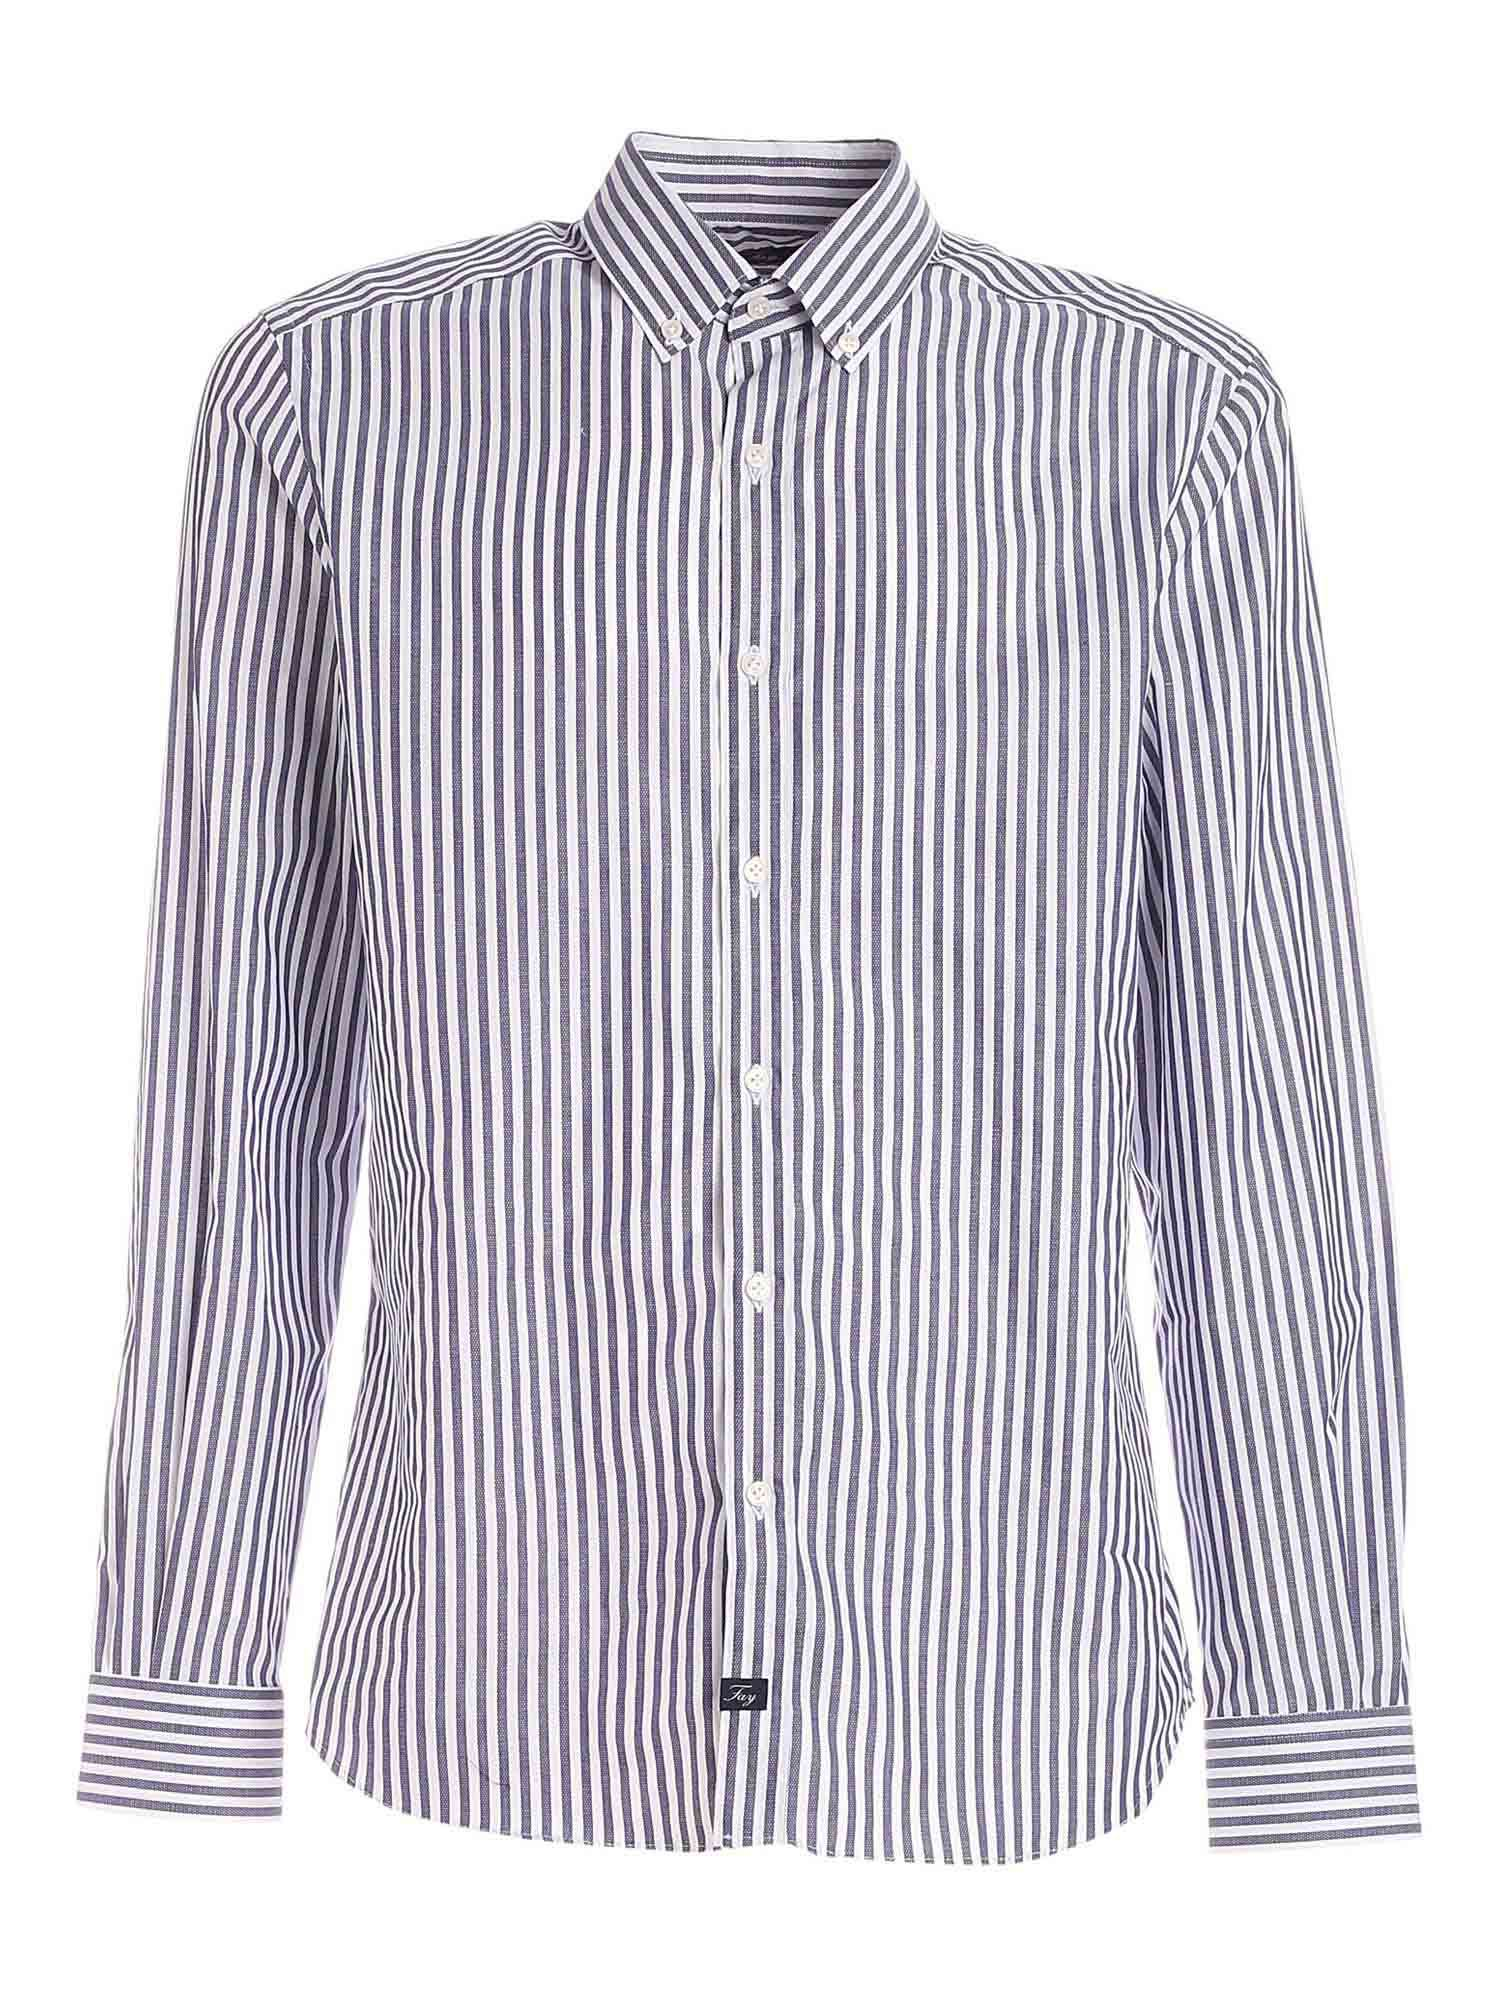 Fay STRIPED SHIRT IN WHITE AND BLUE